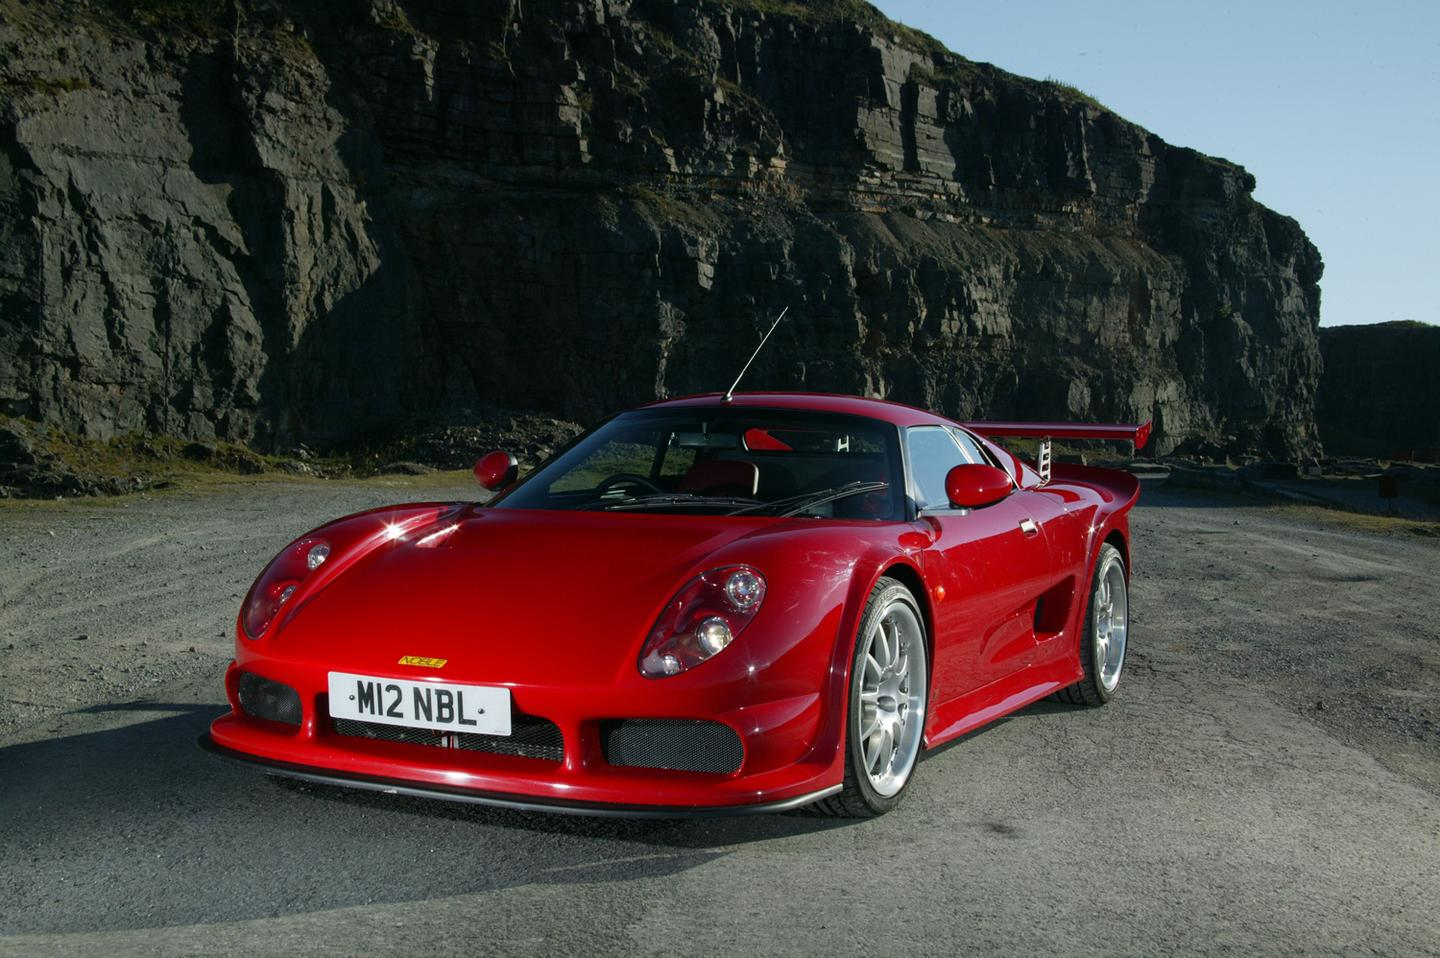 The 2003 Noble M12 GTO-3R